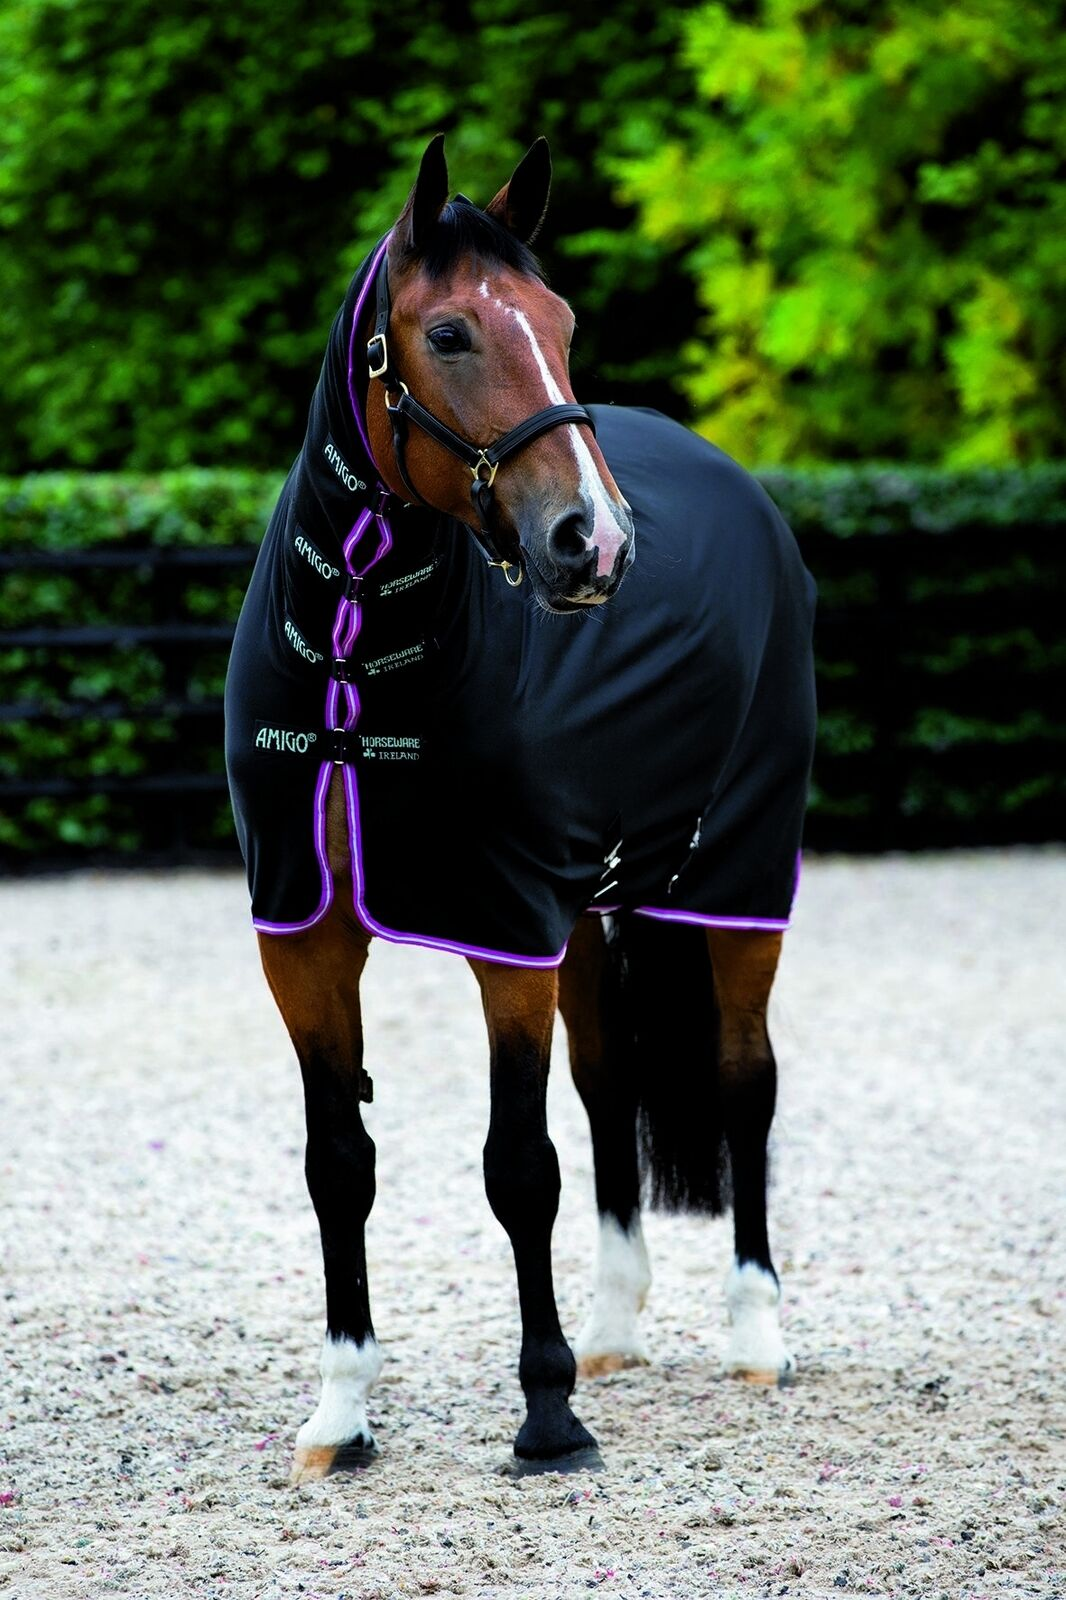 Horseware Amigo All-in-One Jersey Jersey All-in-One Cooler e3310f